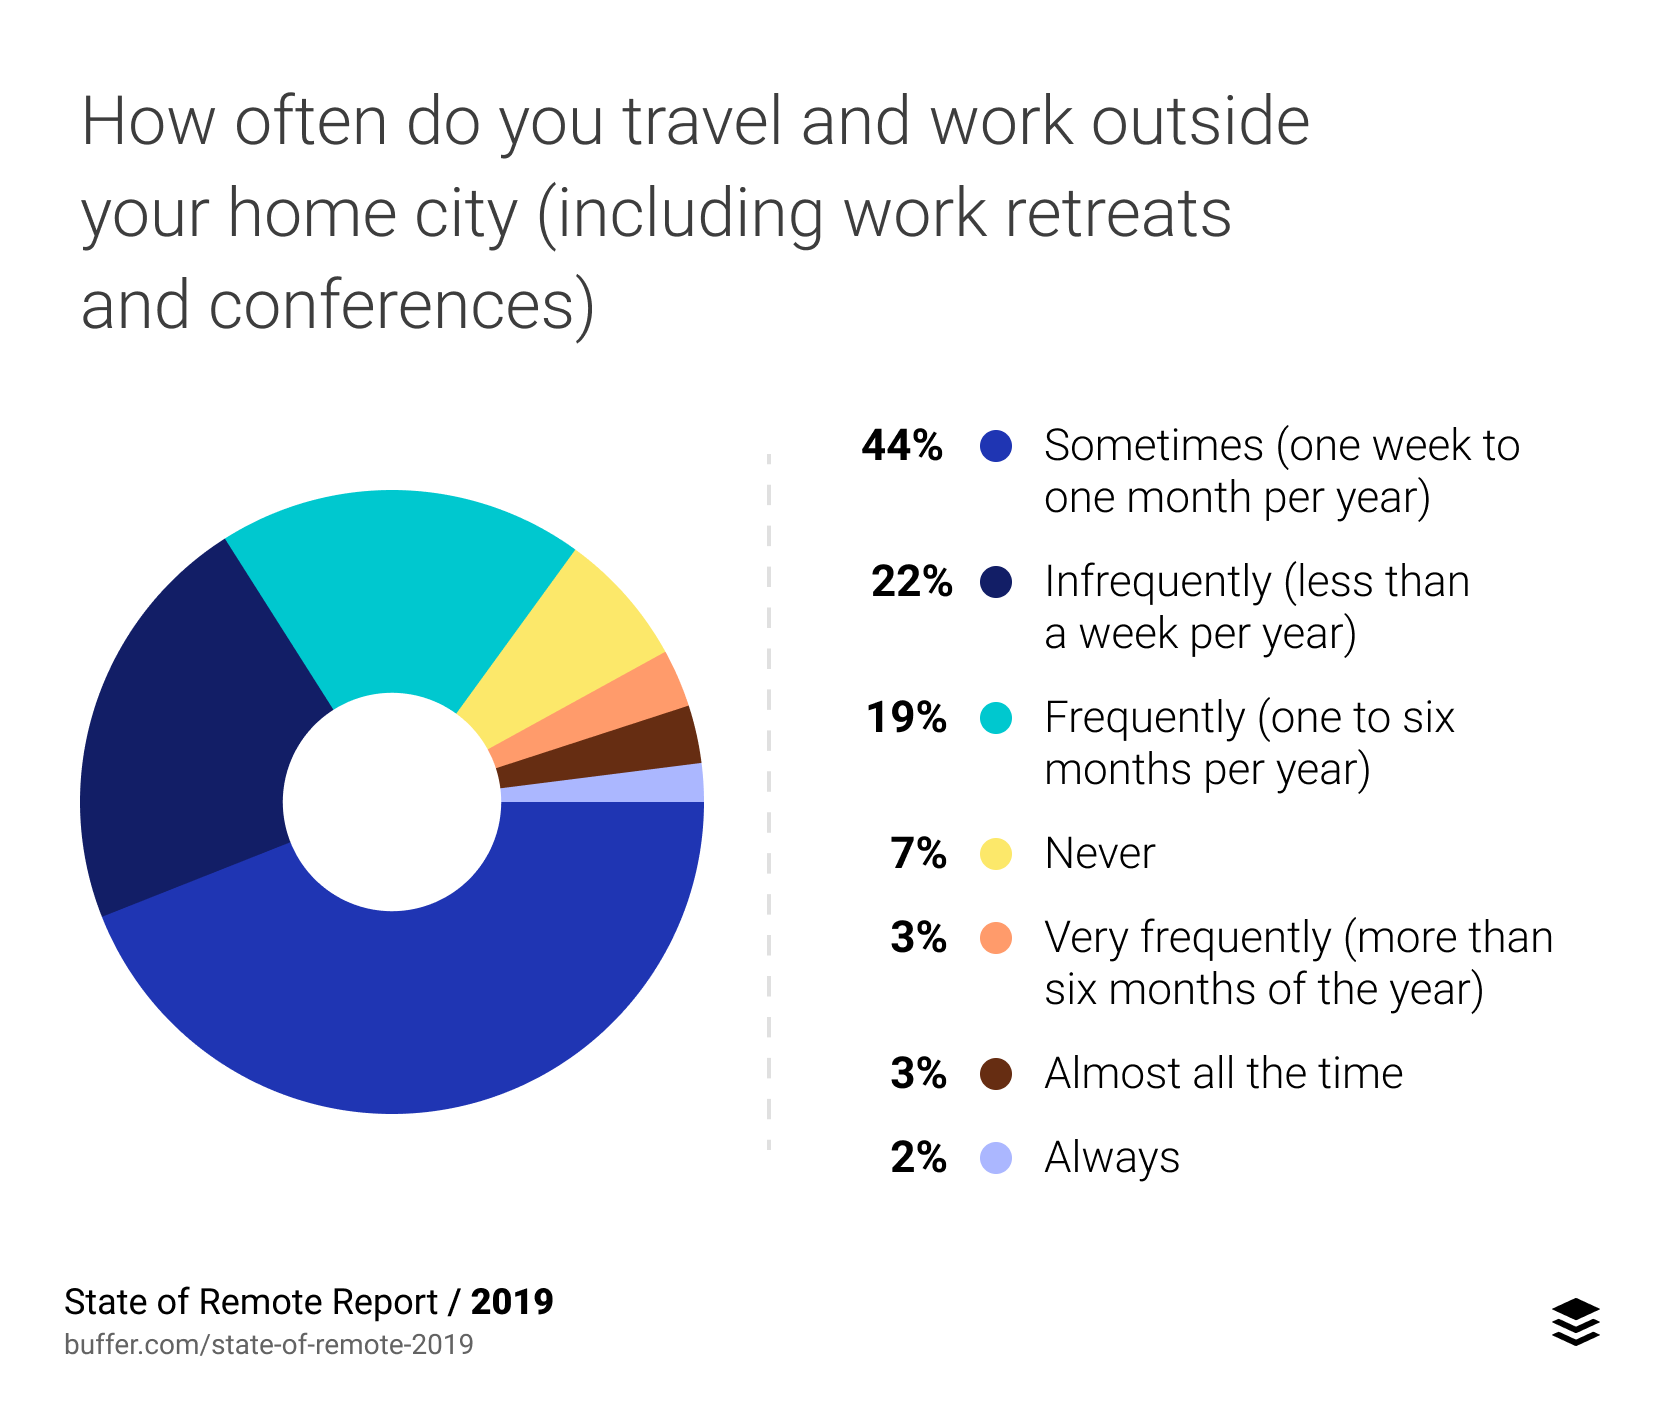 How often do you travel outside of your home city and work at the same time? (This includes work retreats, conferences, and any time you're working in a different city.)